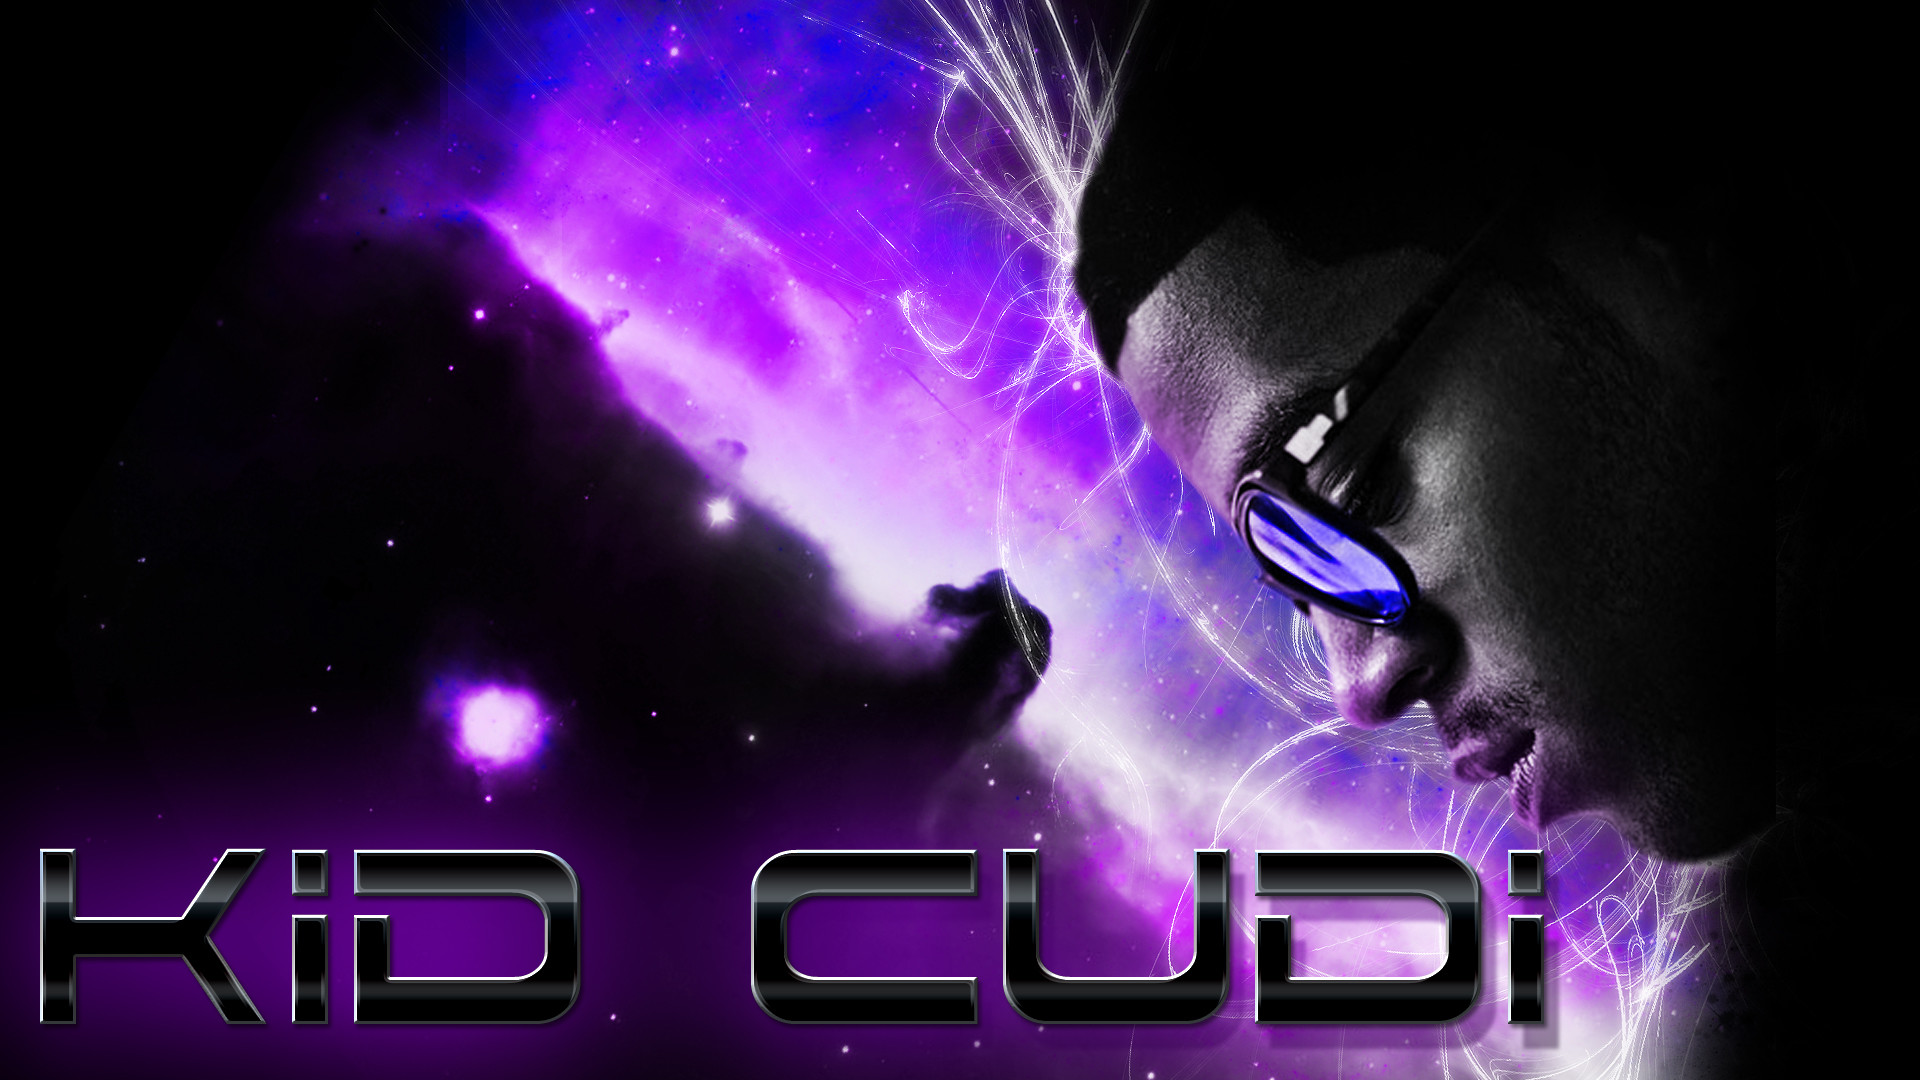 Collection Of Kid Cudi Wallpaper On HDWallpapers